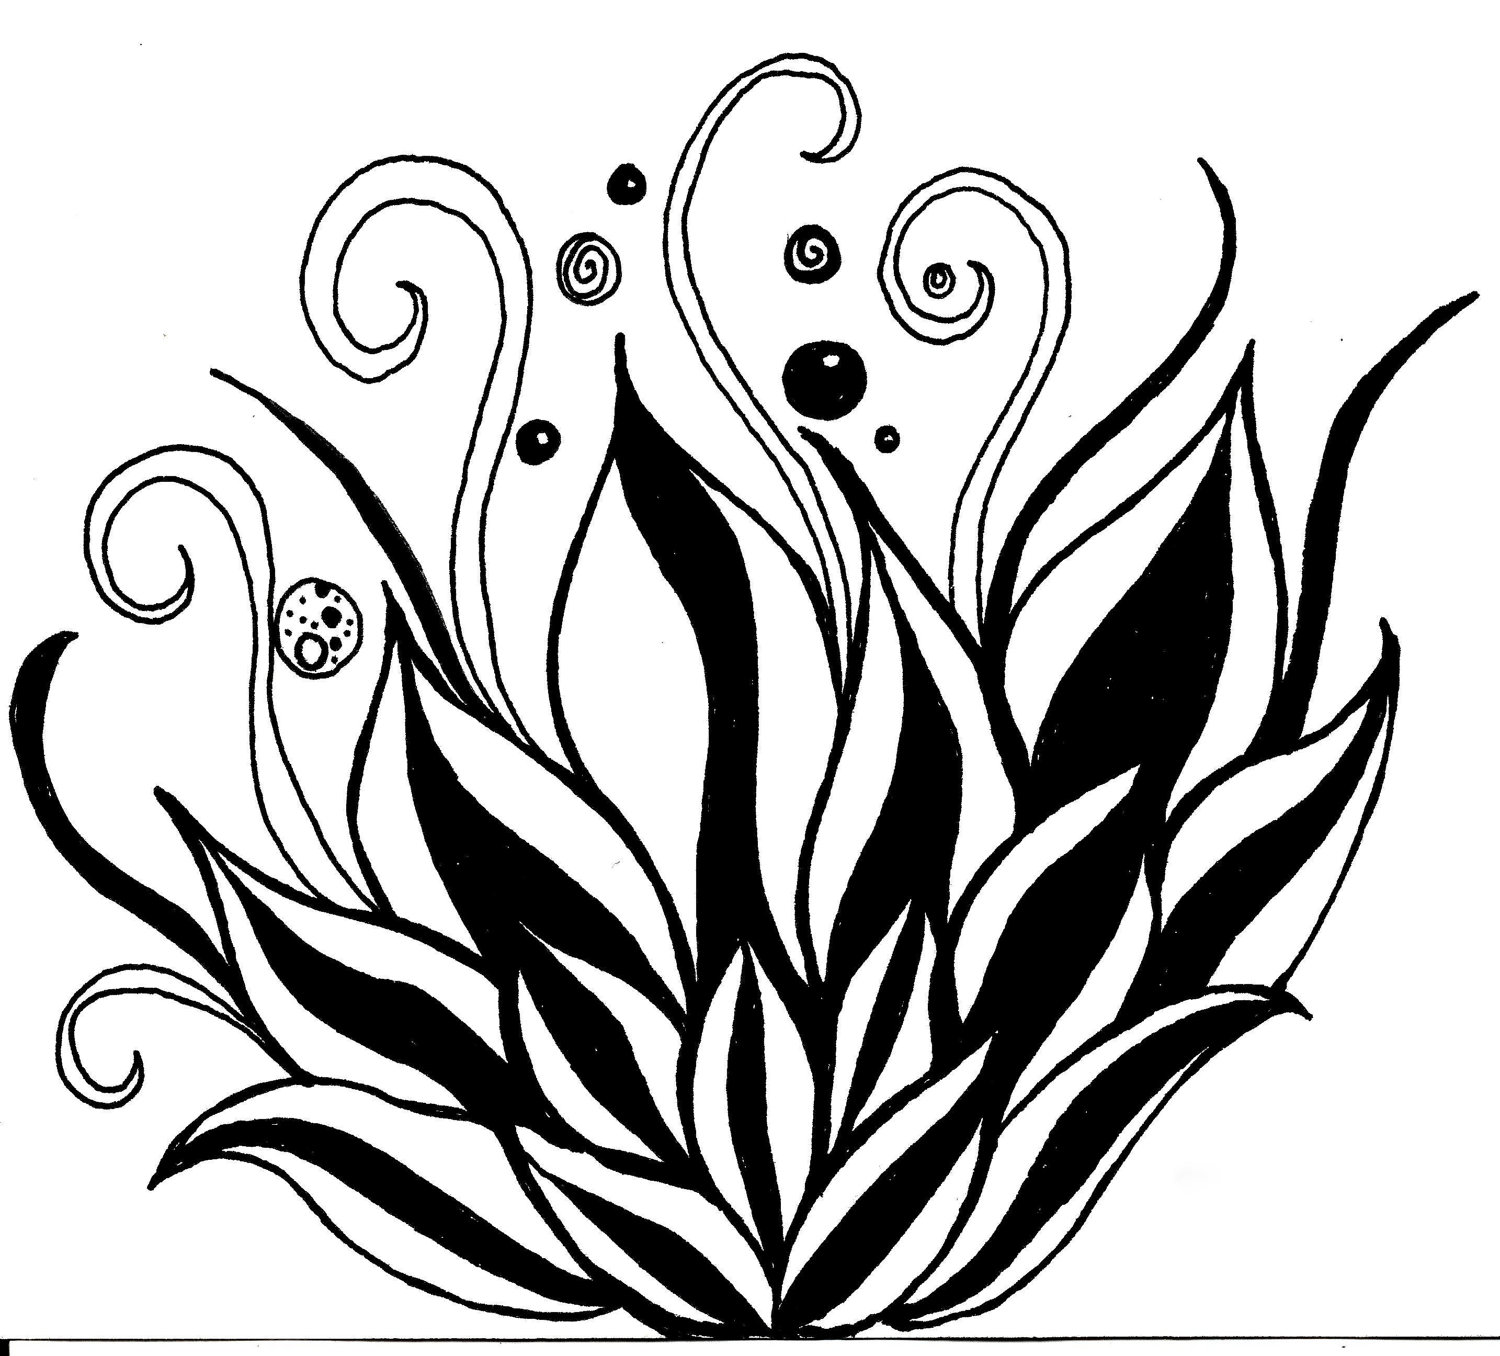 1500x1356 50 New Flower Vase Drawing